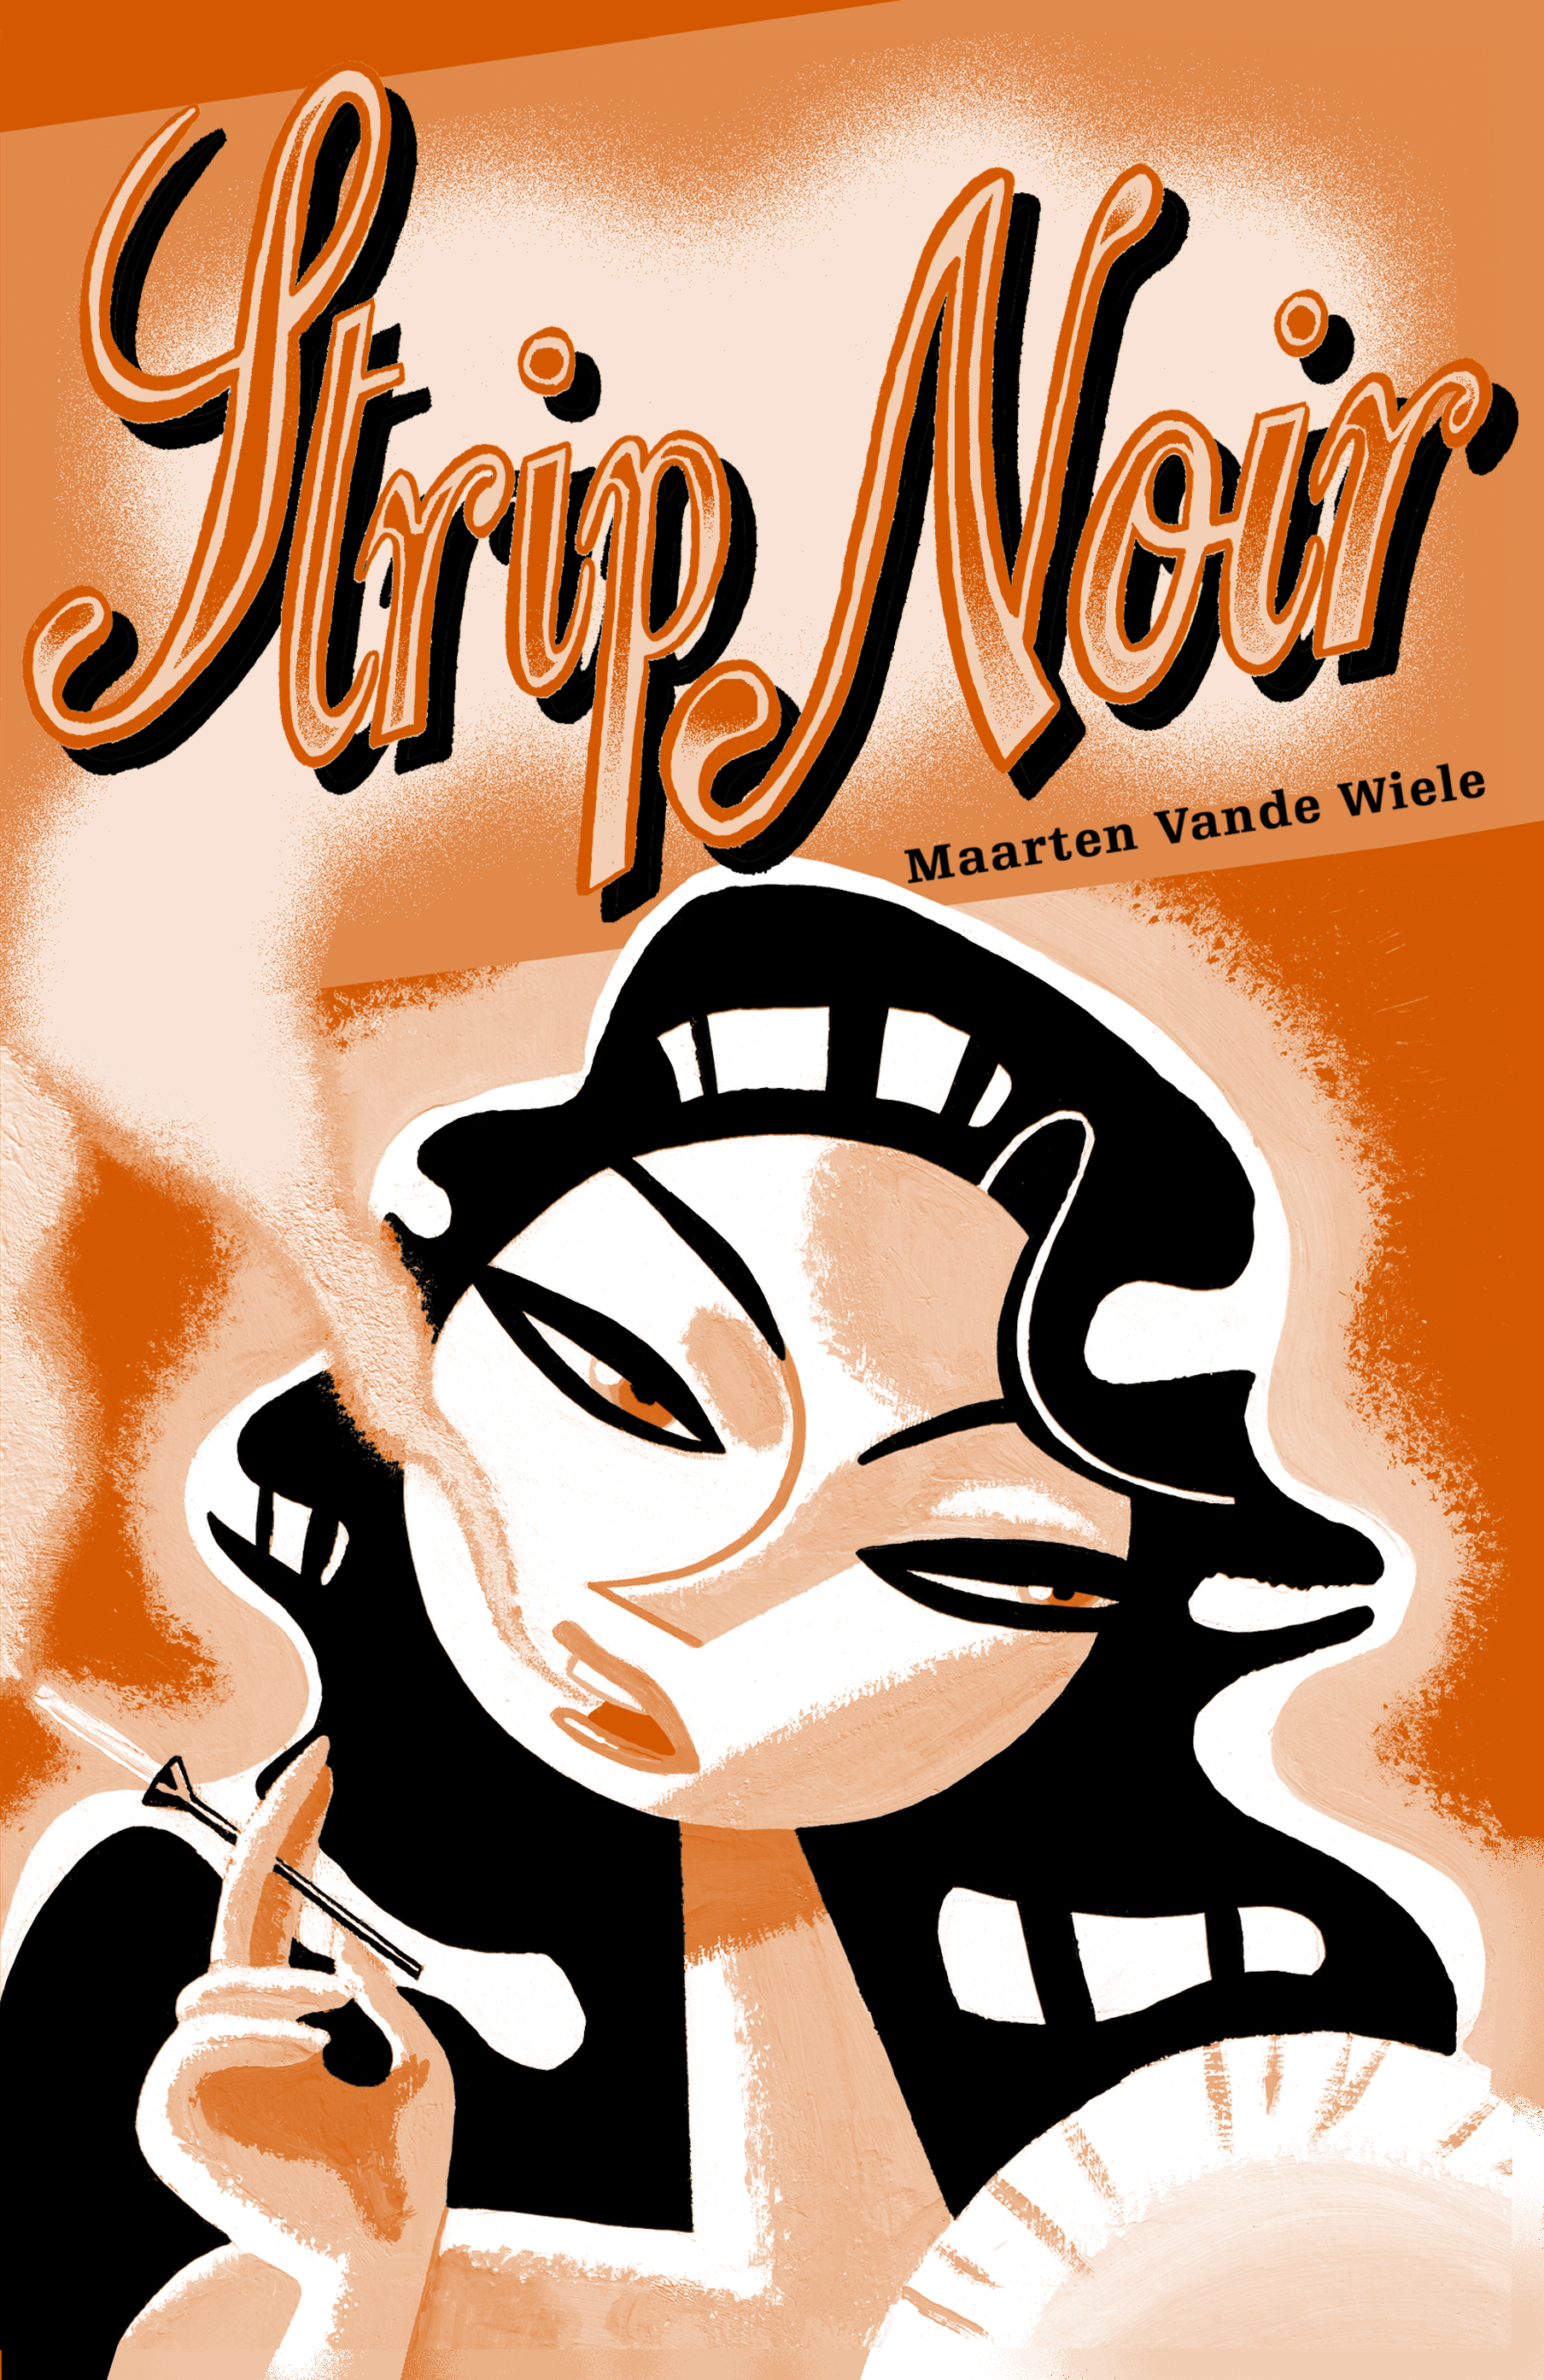 stripnoir.jpg